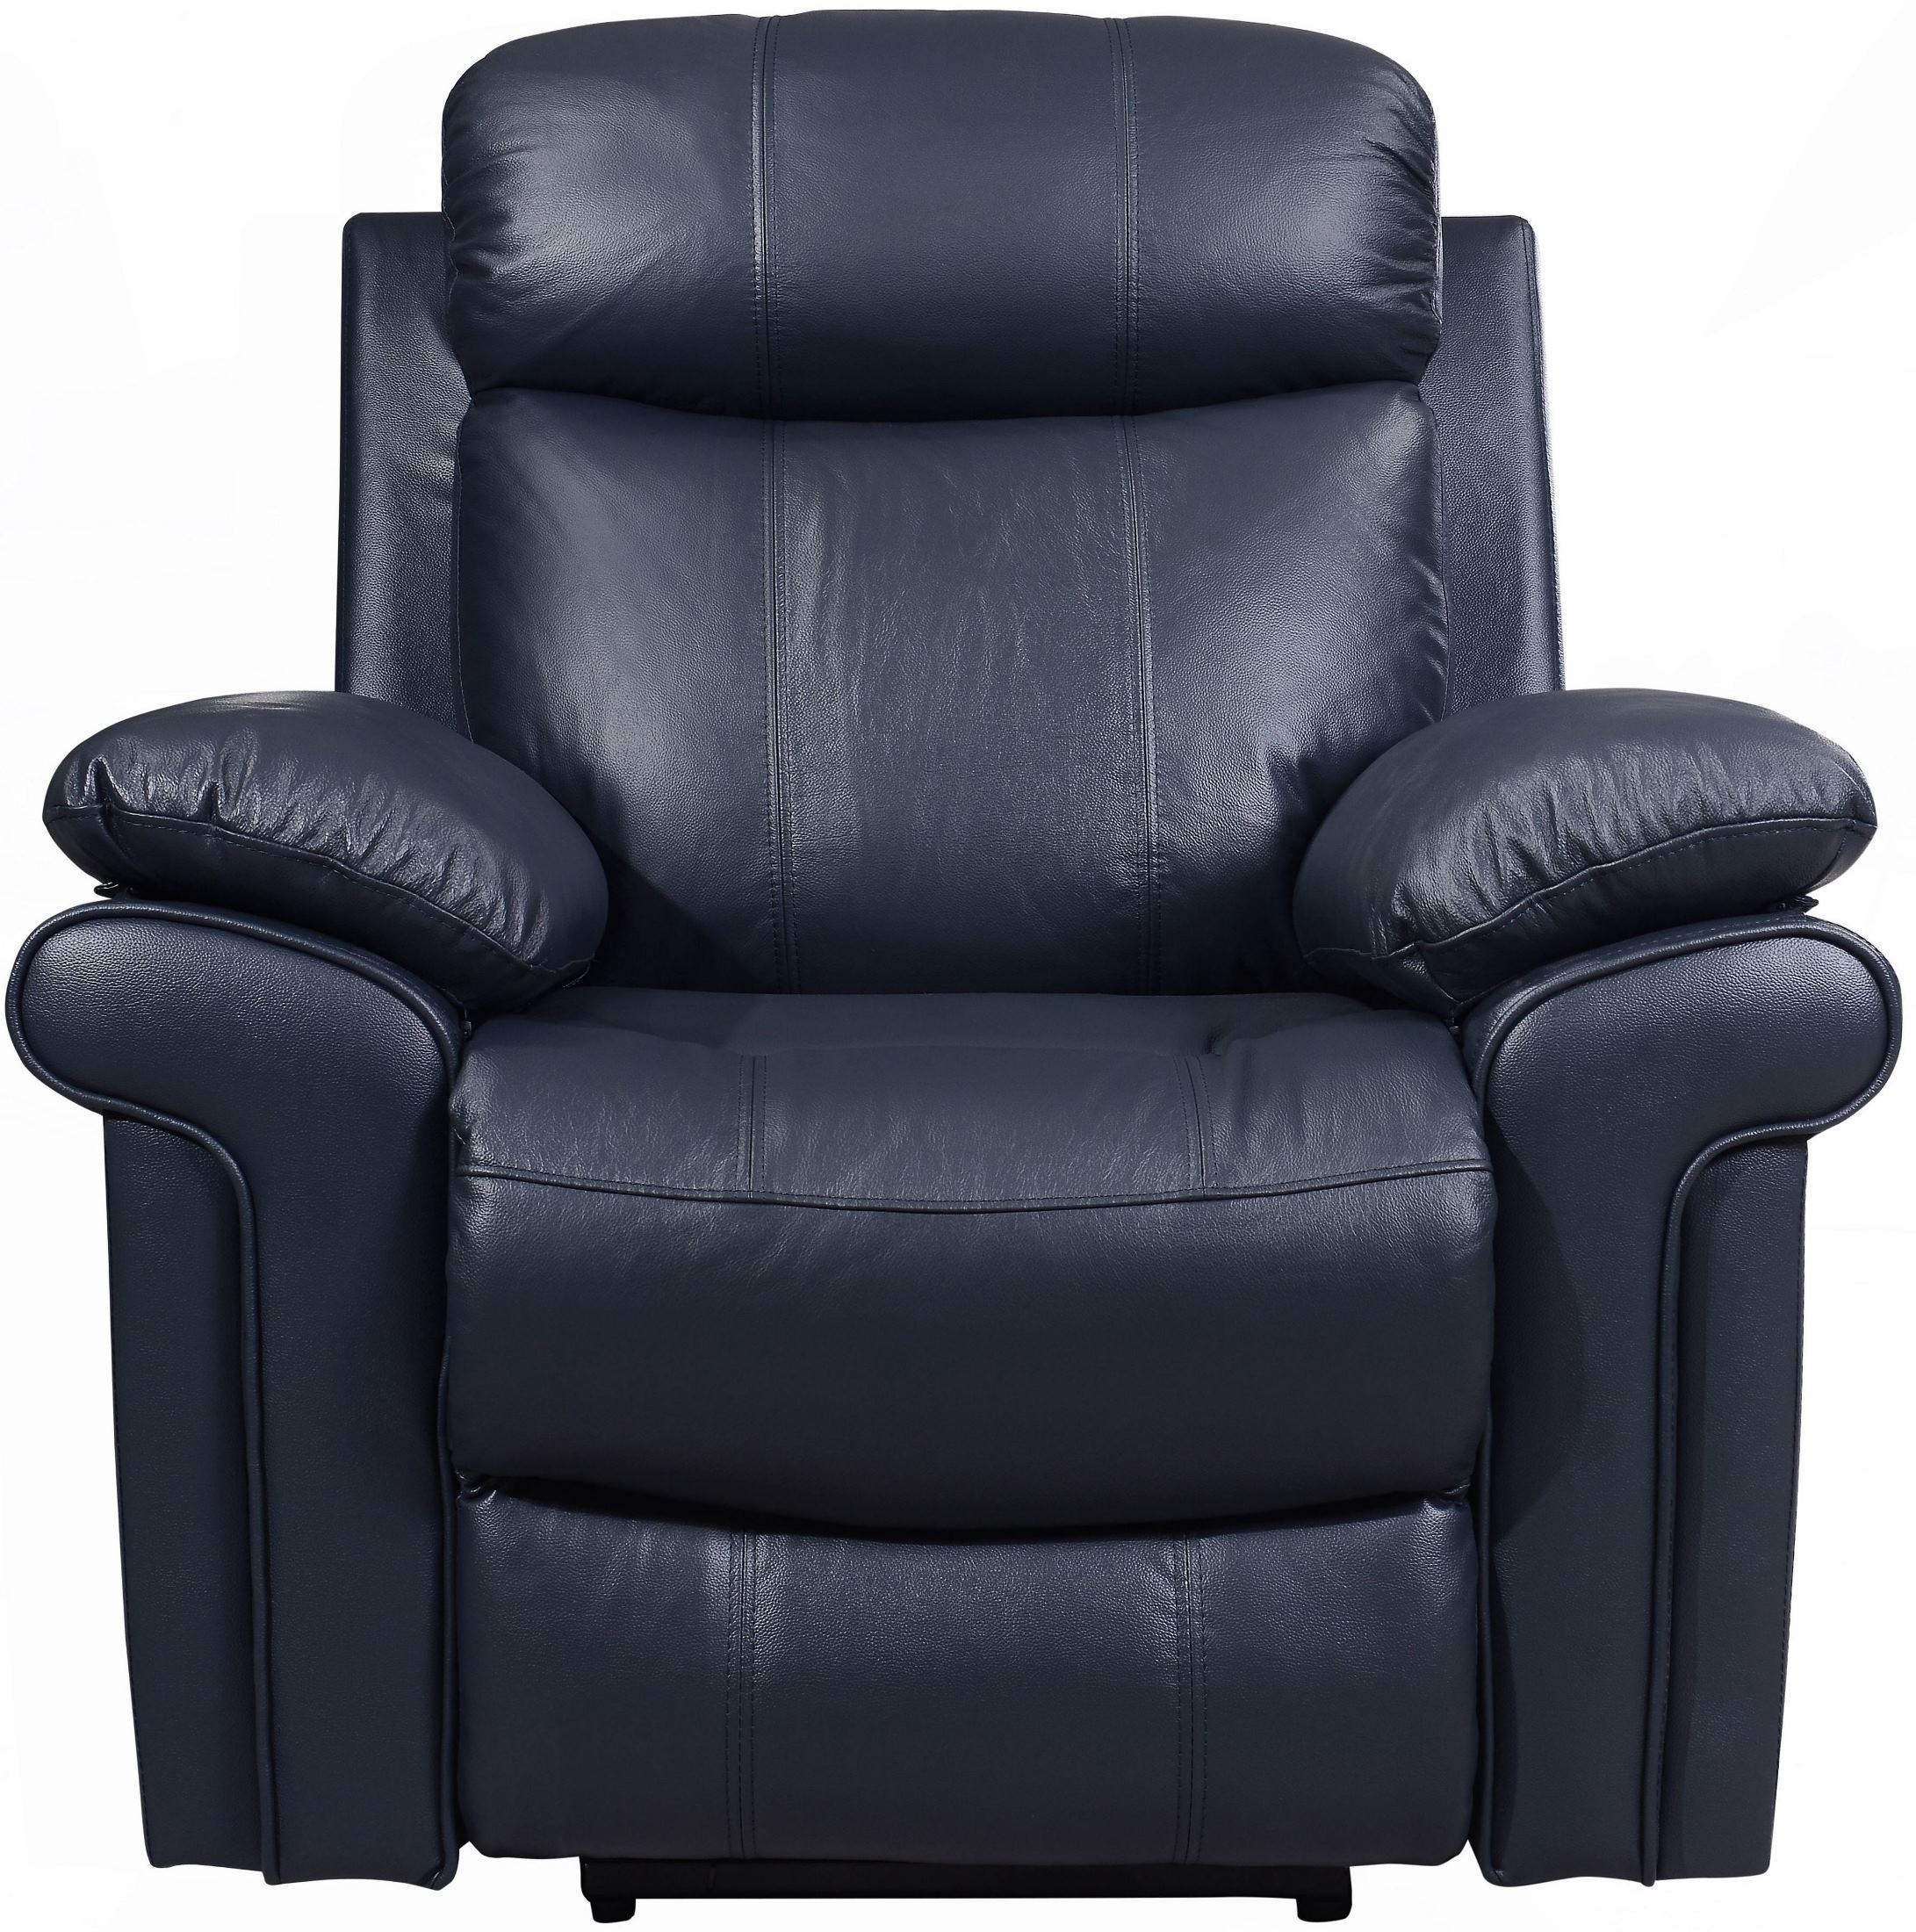 Leather Italia Usa Shae Joplin Blue Leather Power Reclining Chair inside Travis Dk Grey Leather 6 Piece Power Reclining Sectionals With Power Headrest & Usb (Image 10 of 30)